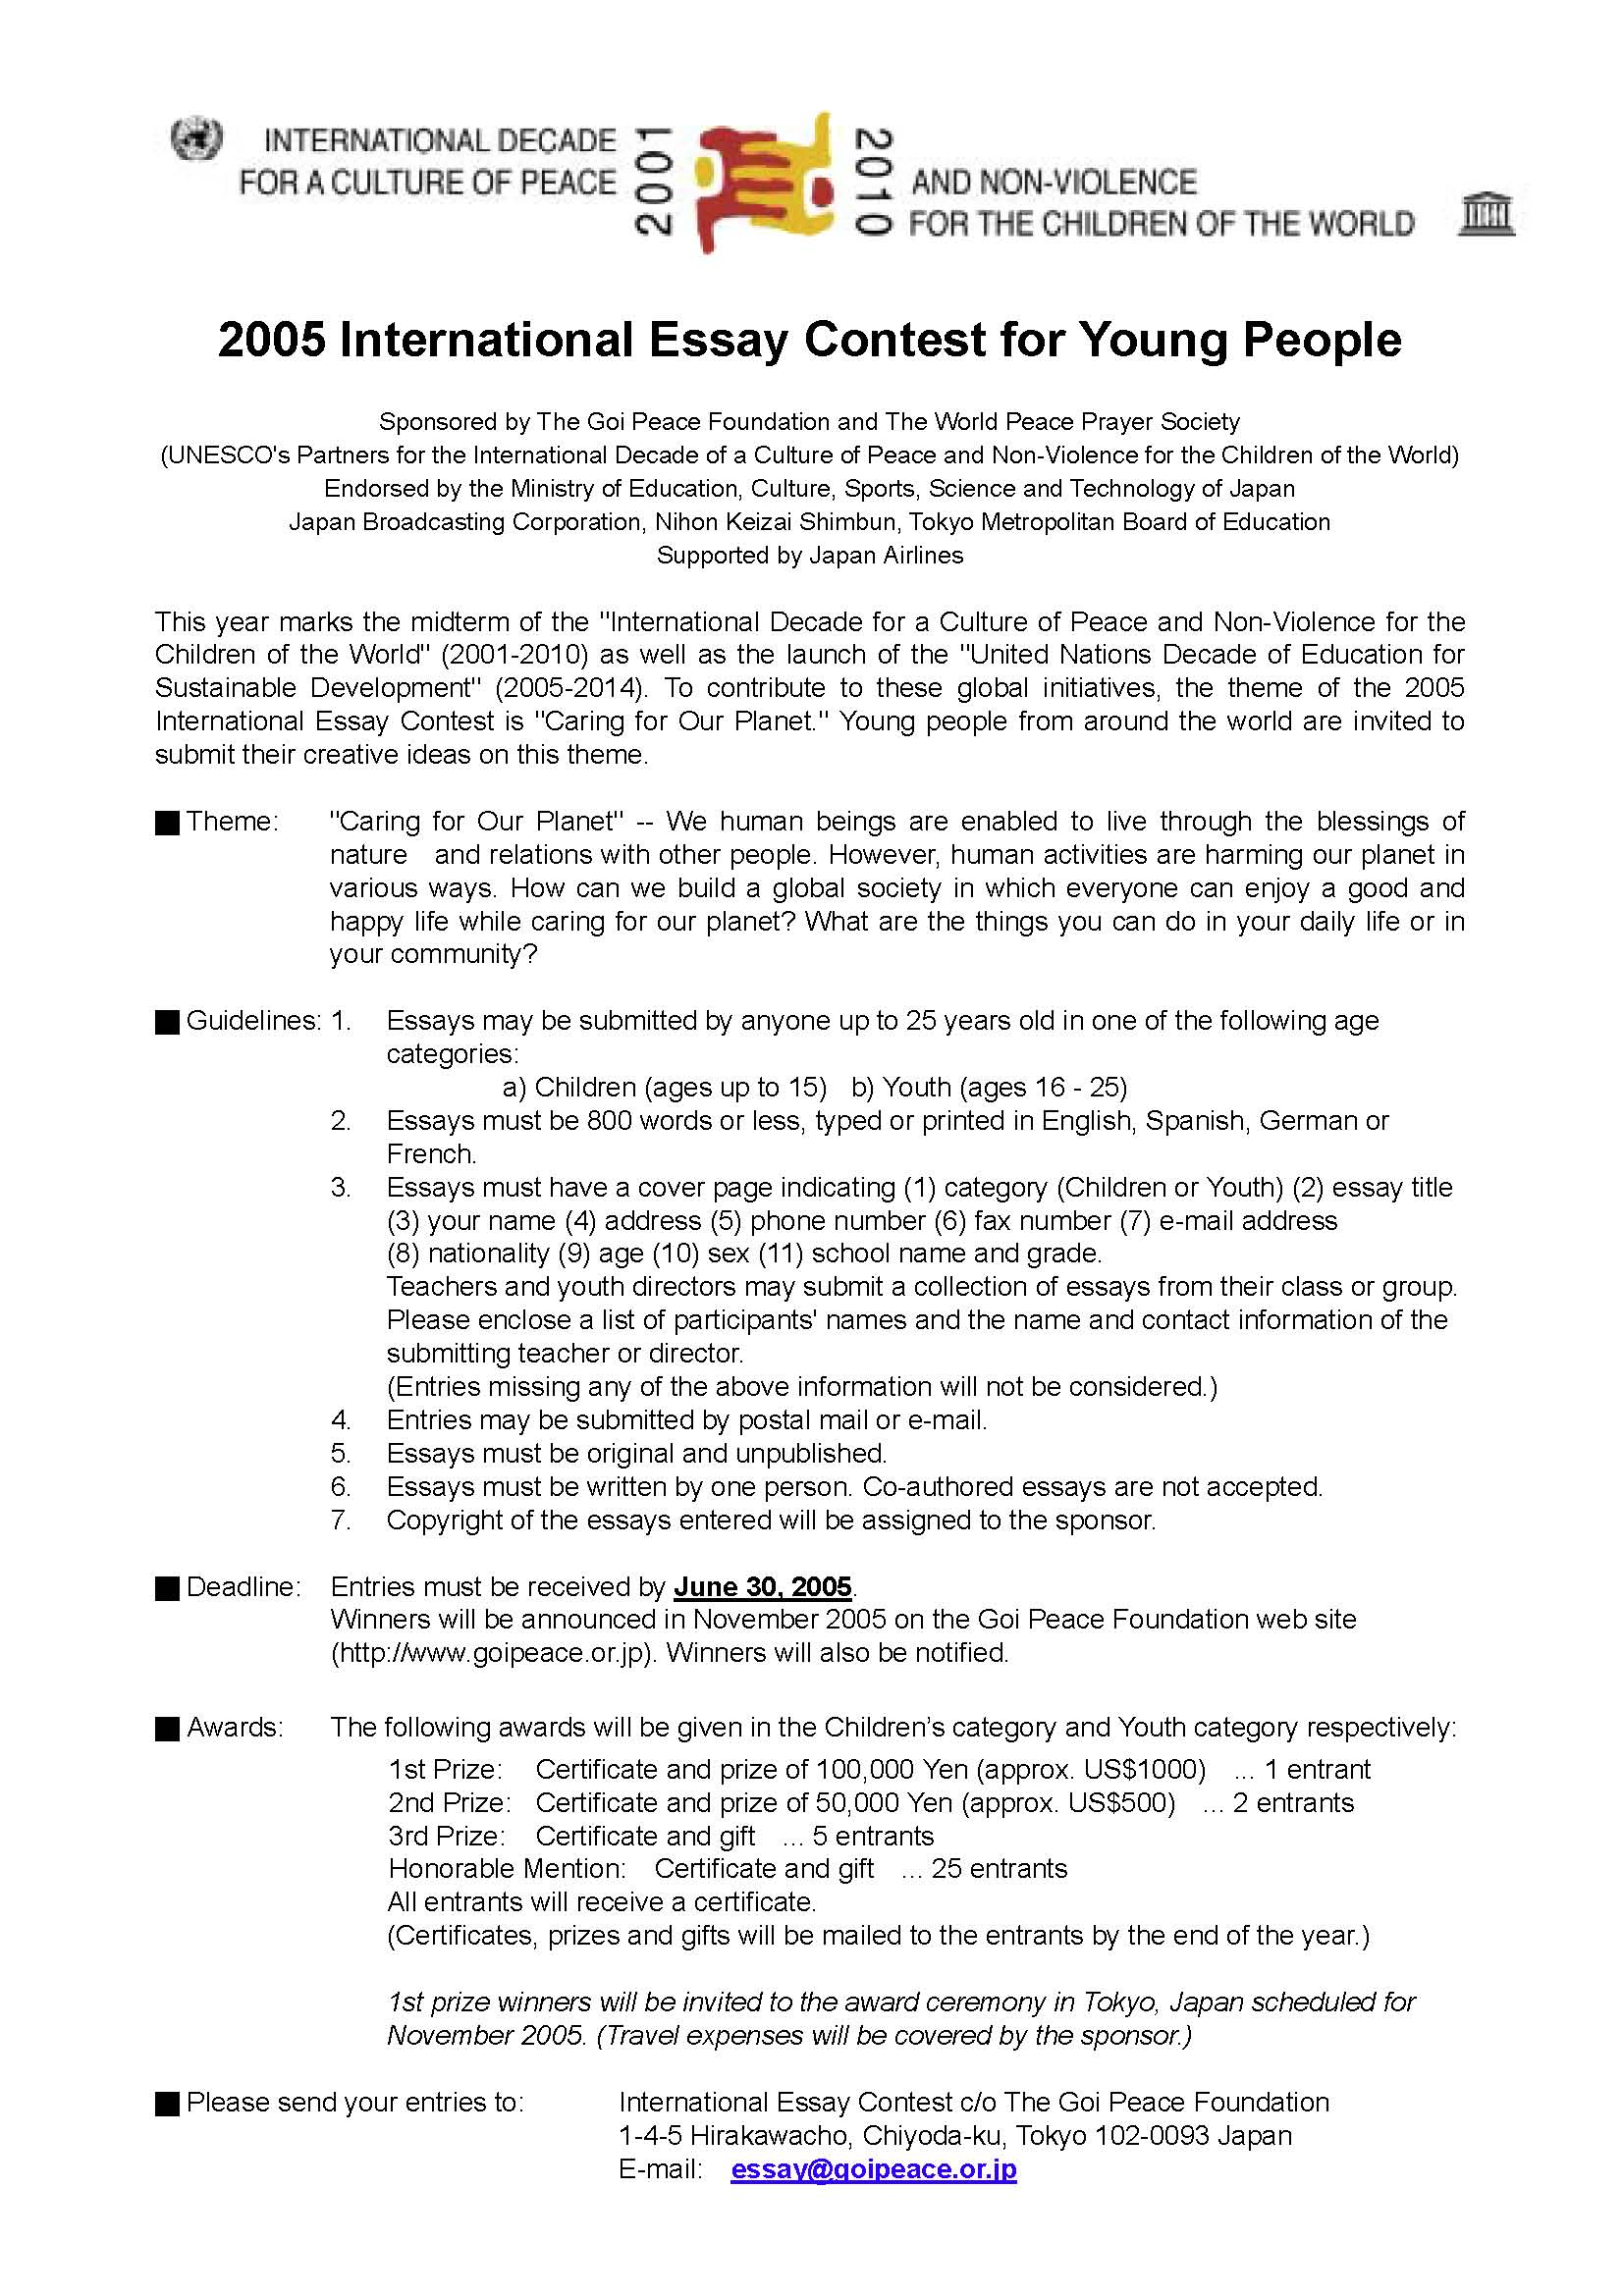 Essays With Thesis Statements Past Contests The Goi Peace Foundation  Family Business Essay also Topics For A Proposal Essay Science And Technology Essay Science And Literature Essay Science  What Is Business Ethics Essay